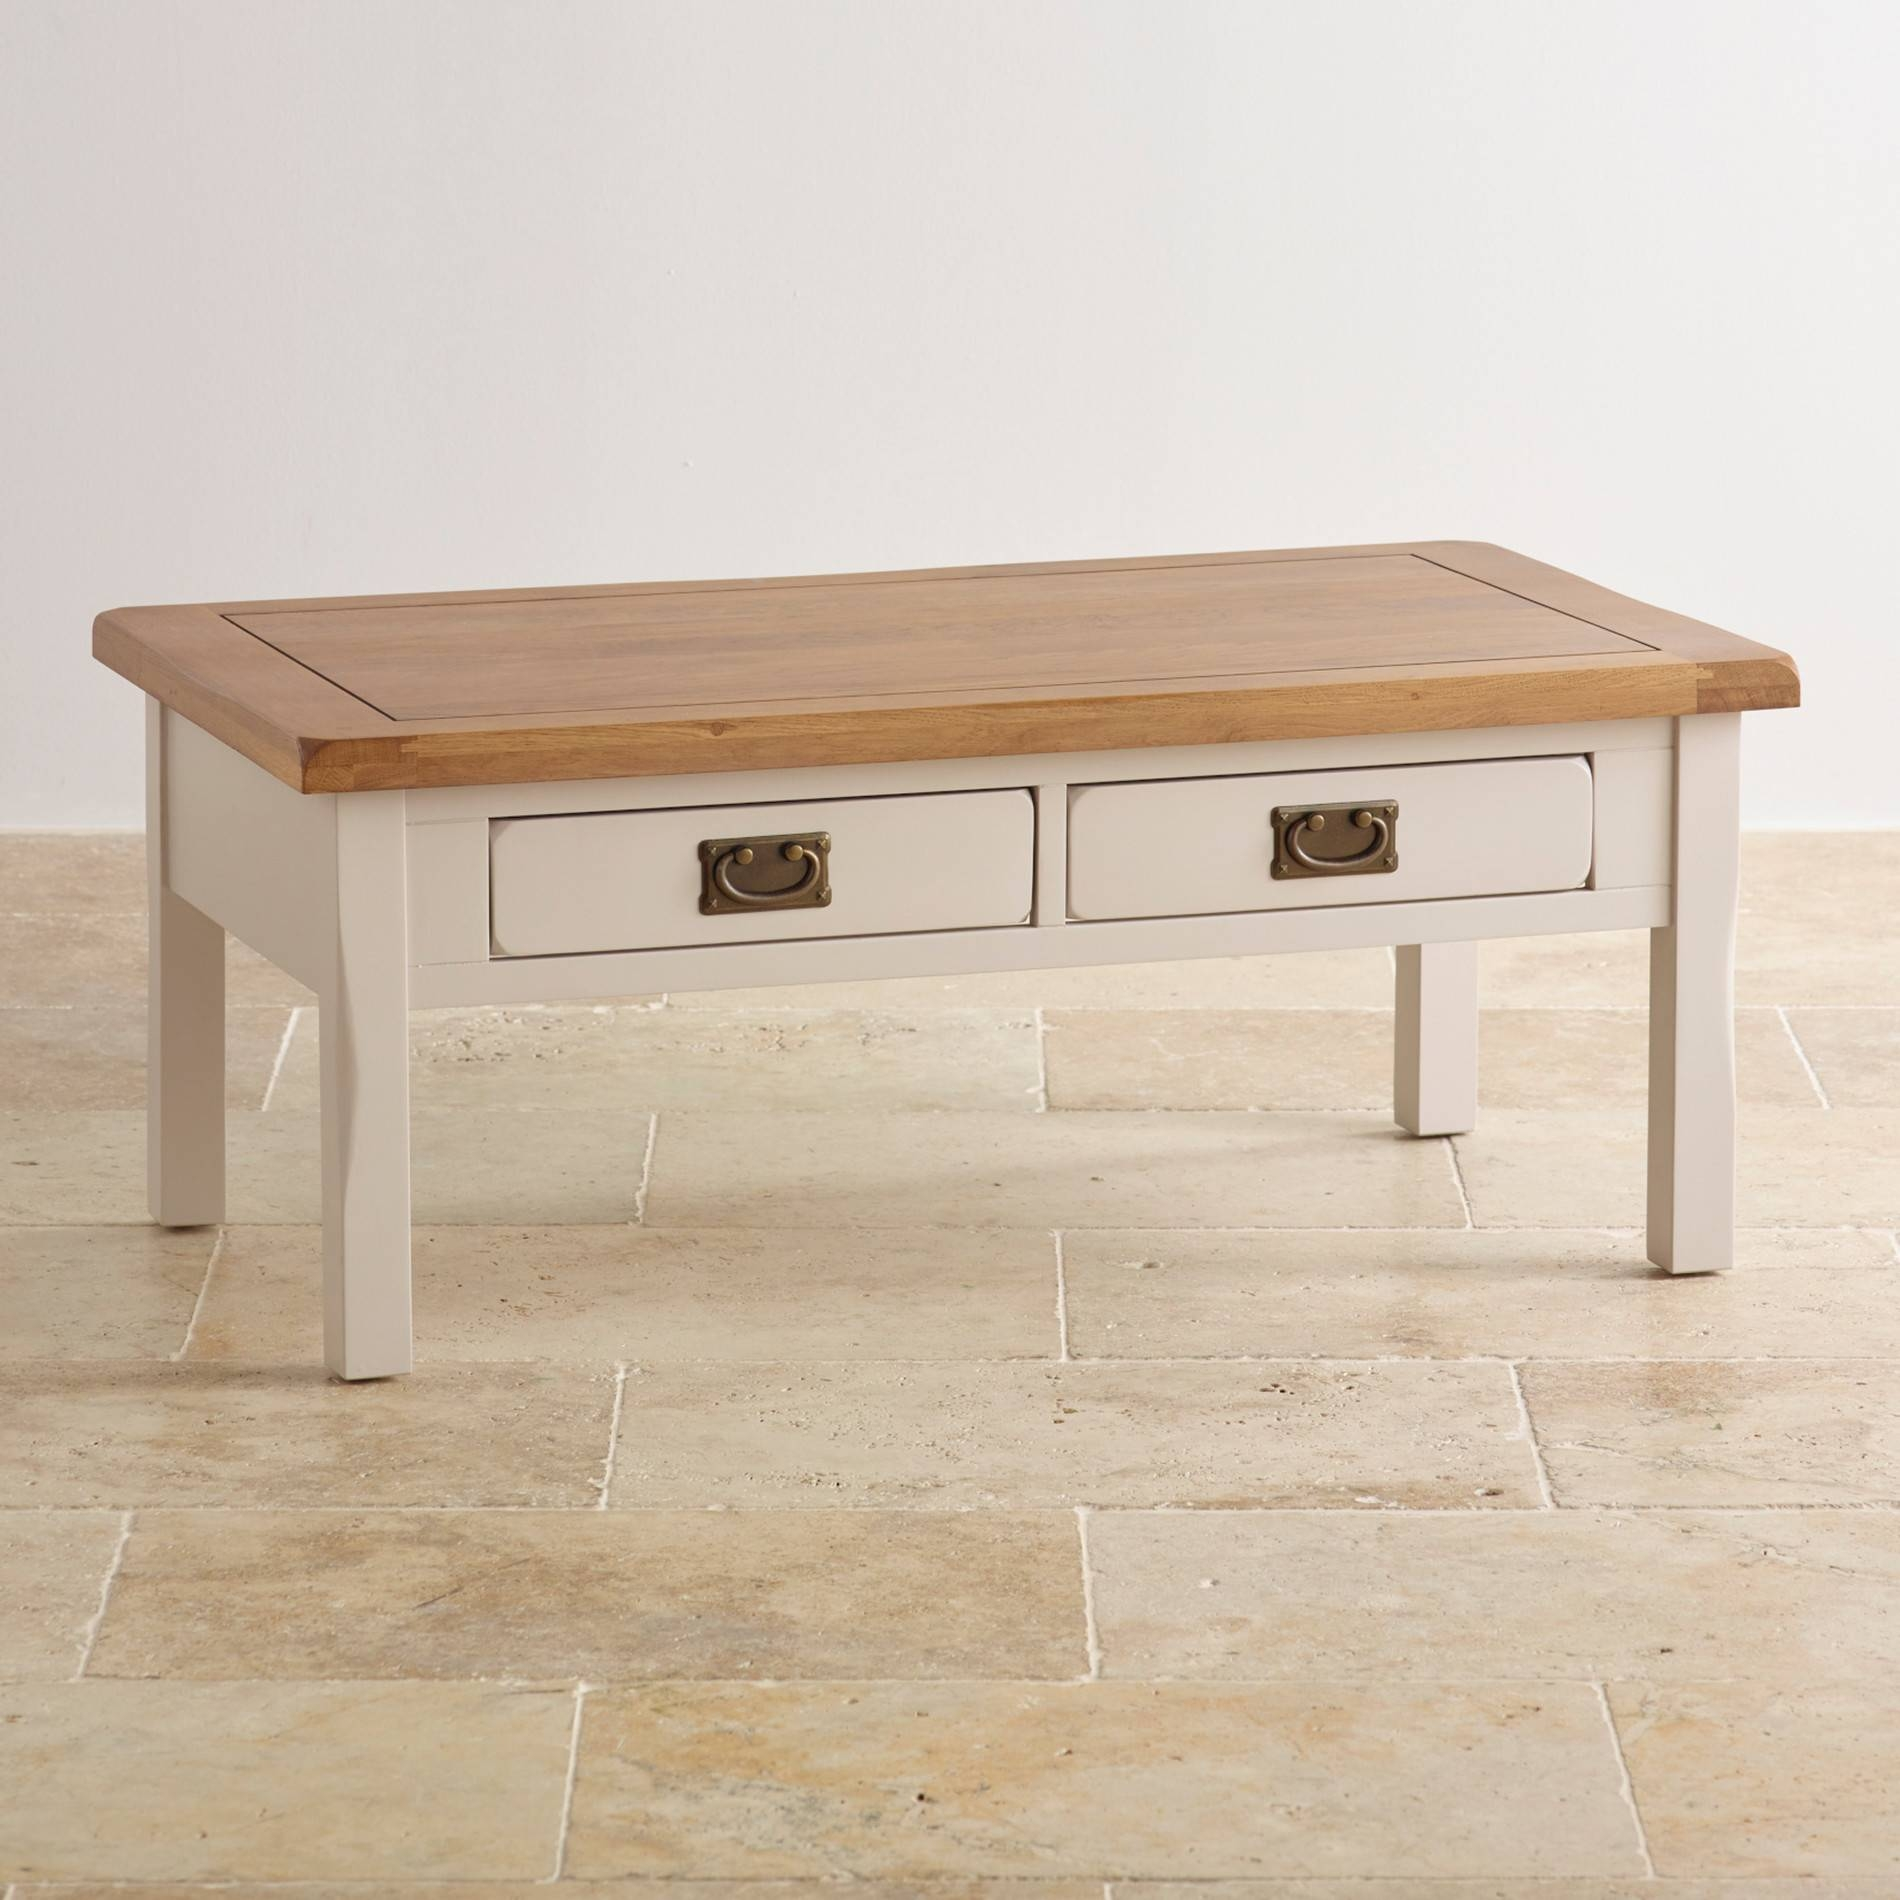 Kemble 4 Drawer Painted Coffee Table In Rustic Solid Oak Intended For Solid Oak Coffee Table With Storage (View 8 of 15)